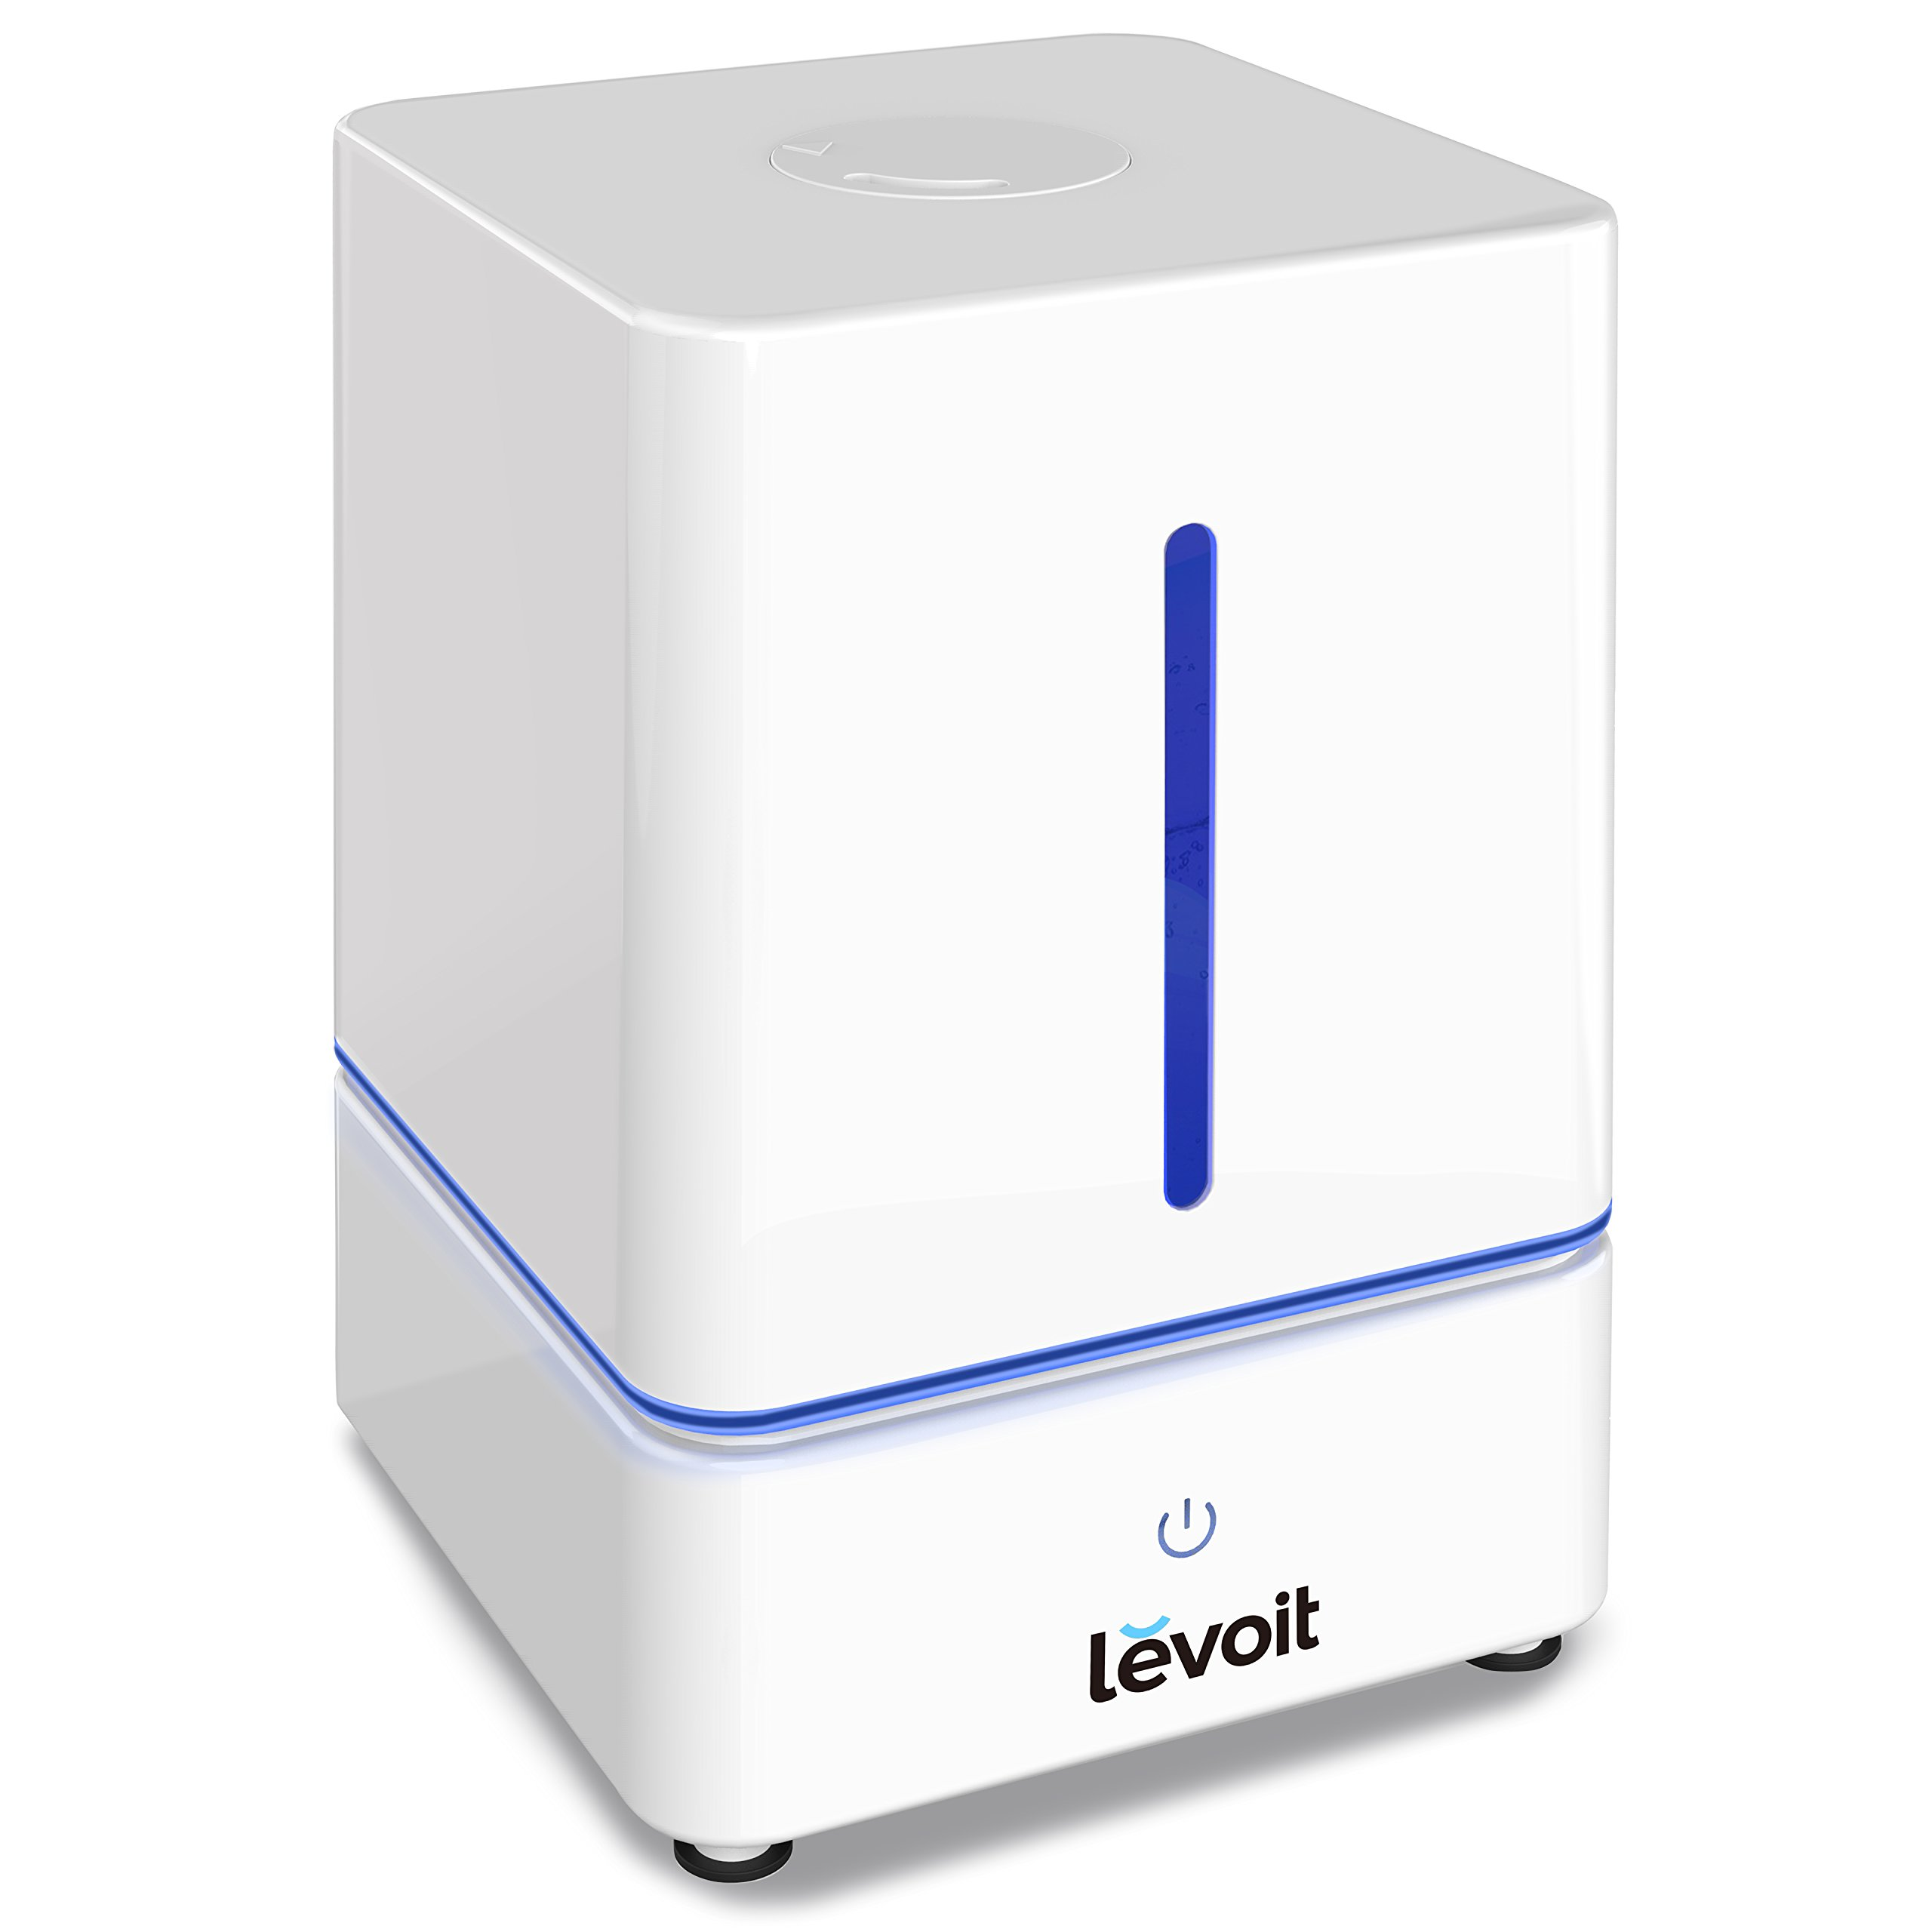 LEVOIT Humidifier, 4L Cool Mist Ultrasonic Humidifiers Bedroom Night Light Whisper-Quiet Operation, Filterless Vaporizer Home, Room, Babies, Waterless Auto Shut-off